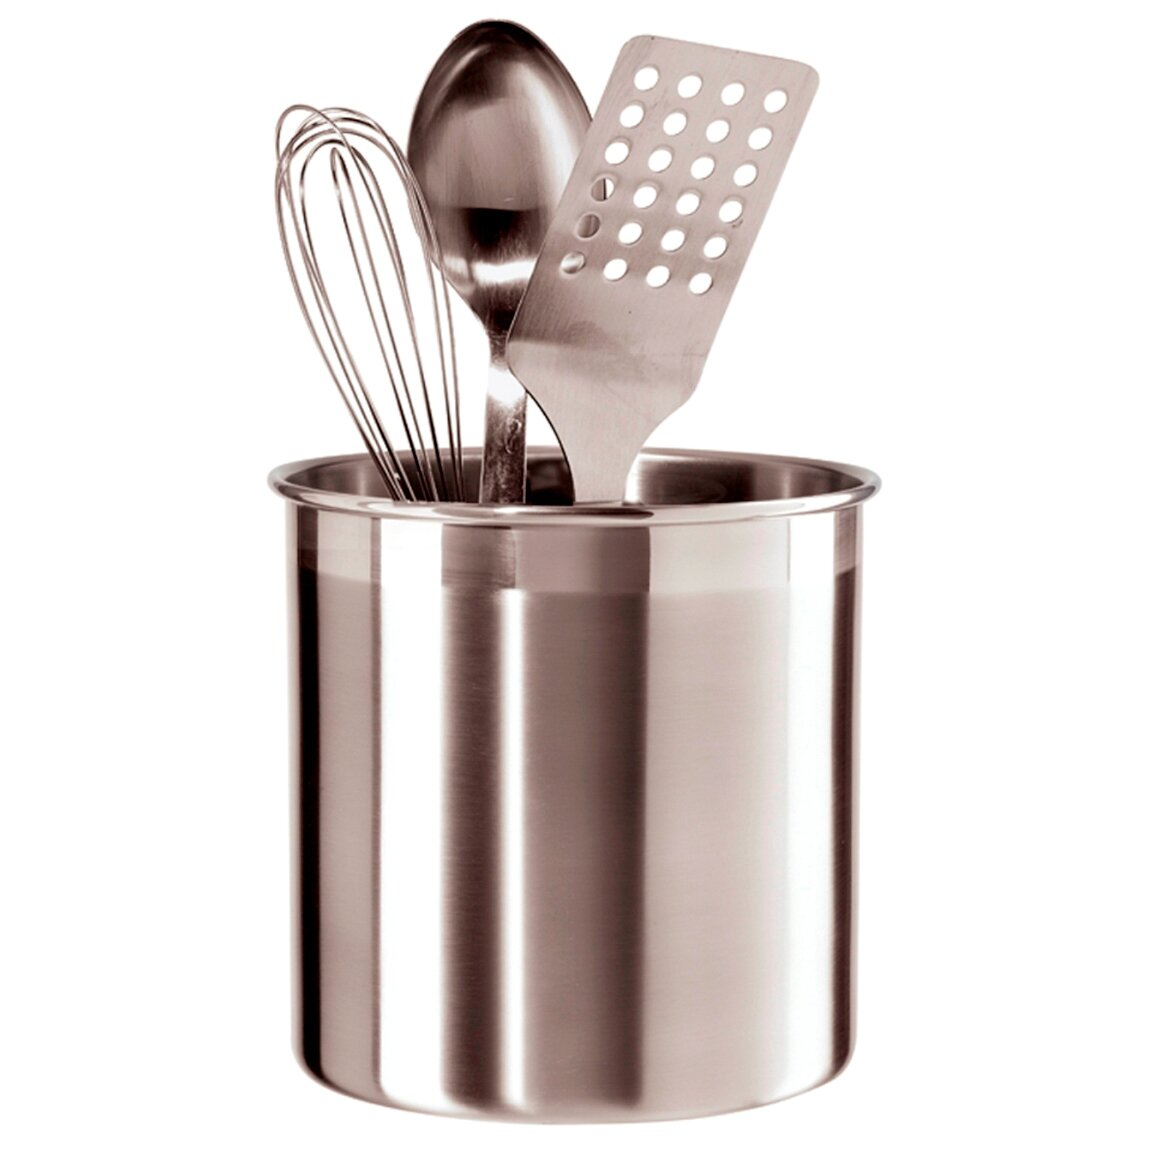 Oggi jumbo stainless steel utensil holder reviews wayfair for Kitchen design utensils